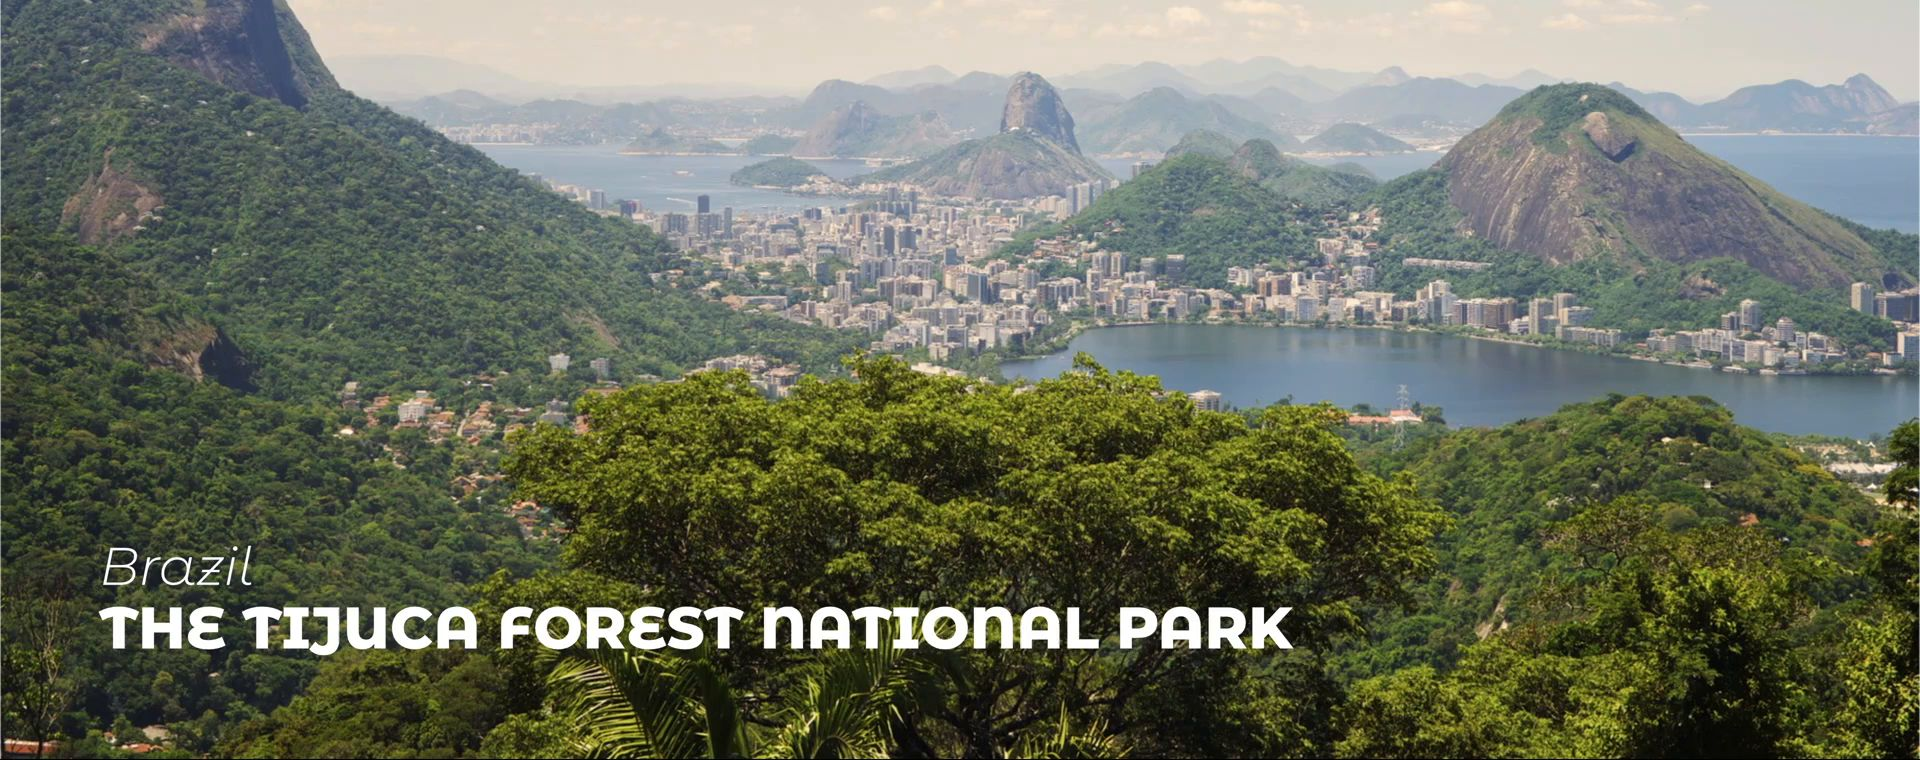 THE TIJUCA FOREST NATIONAL PARK